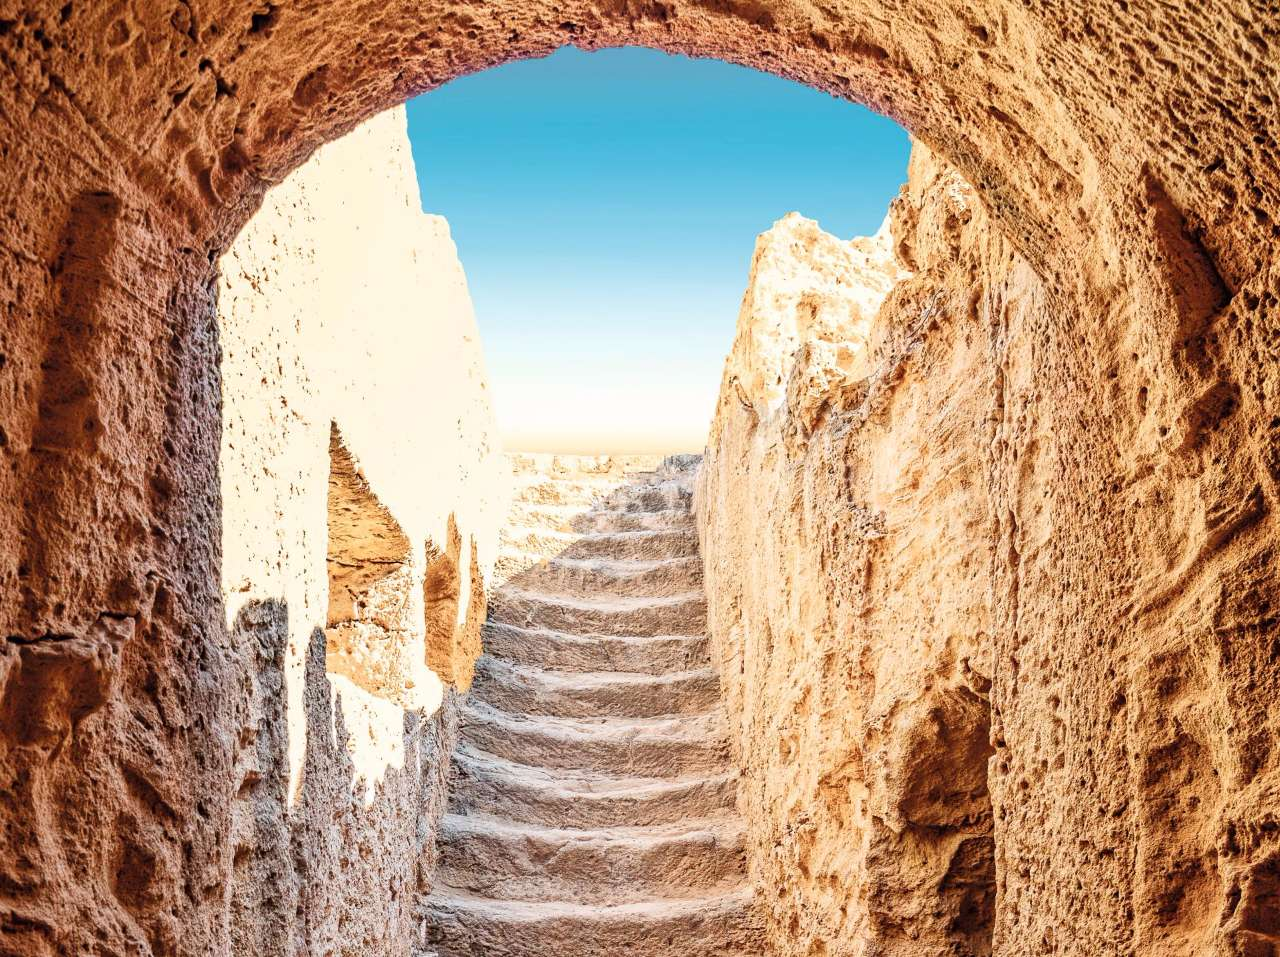 tomb-of-the-kings-paphos-cyprus-lib_shu_15_f0756_c